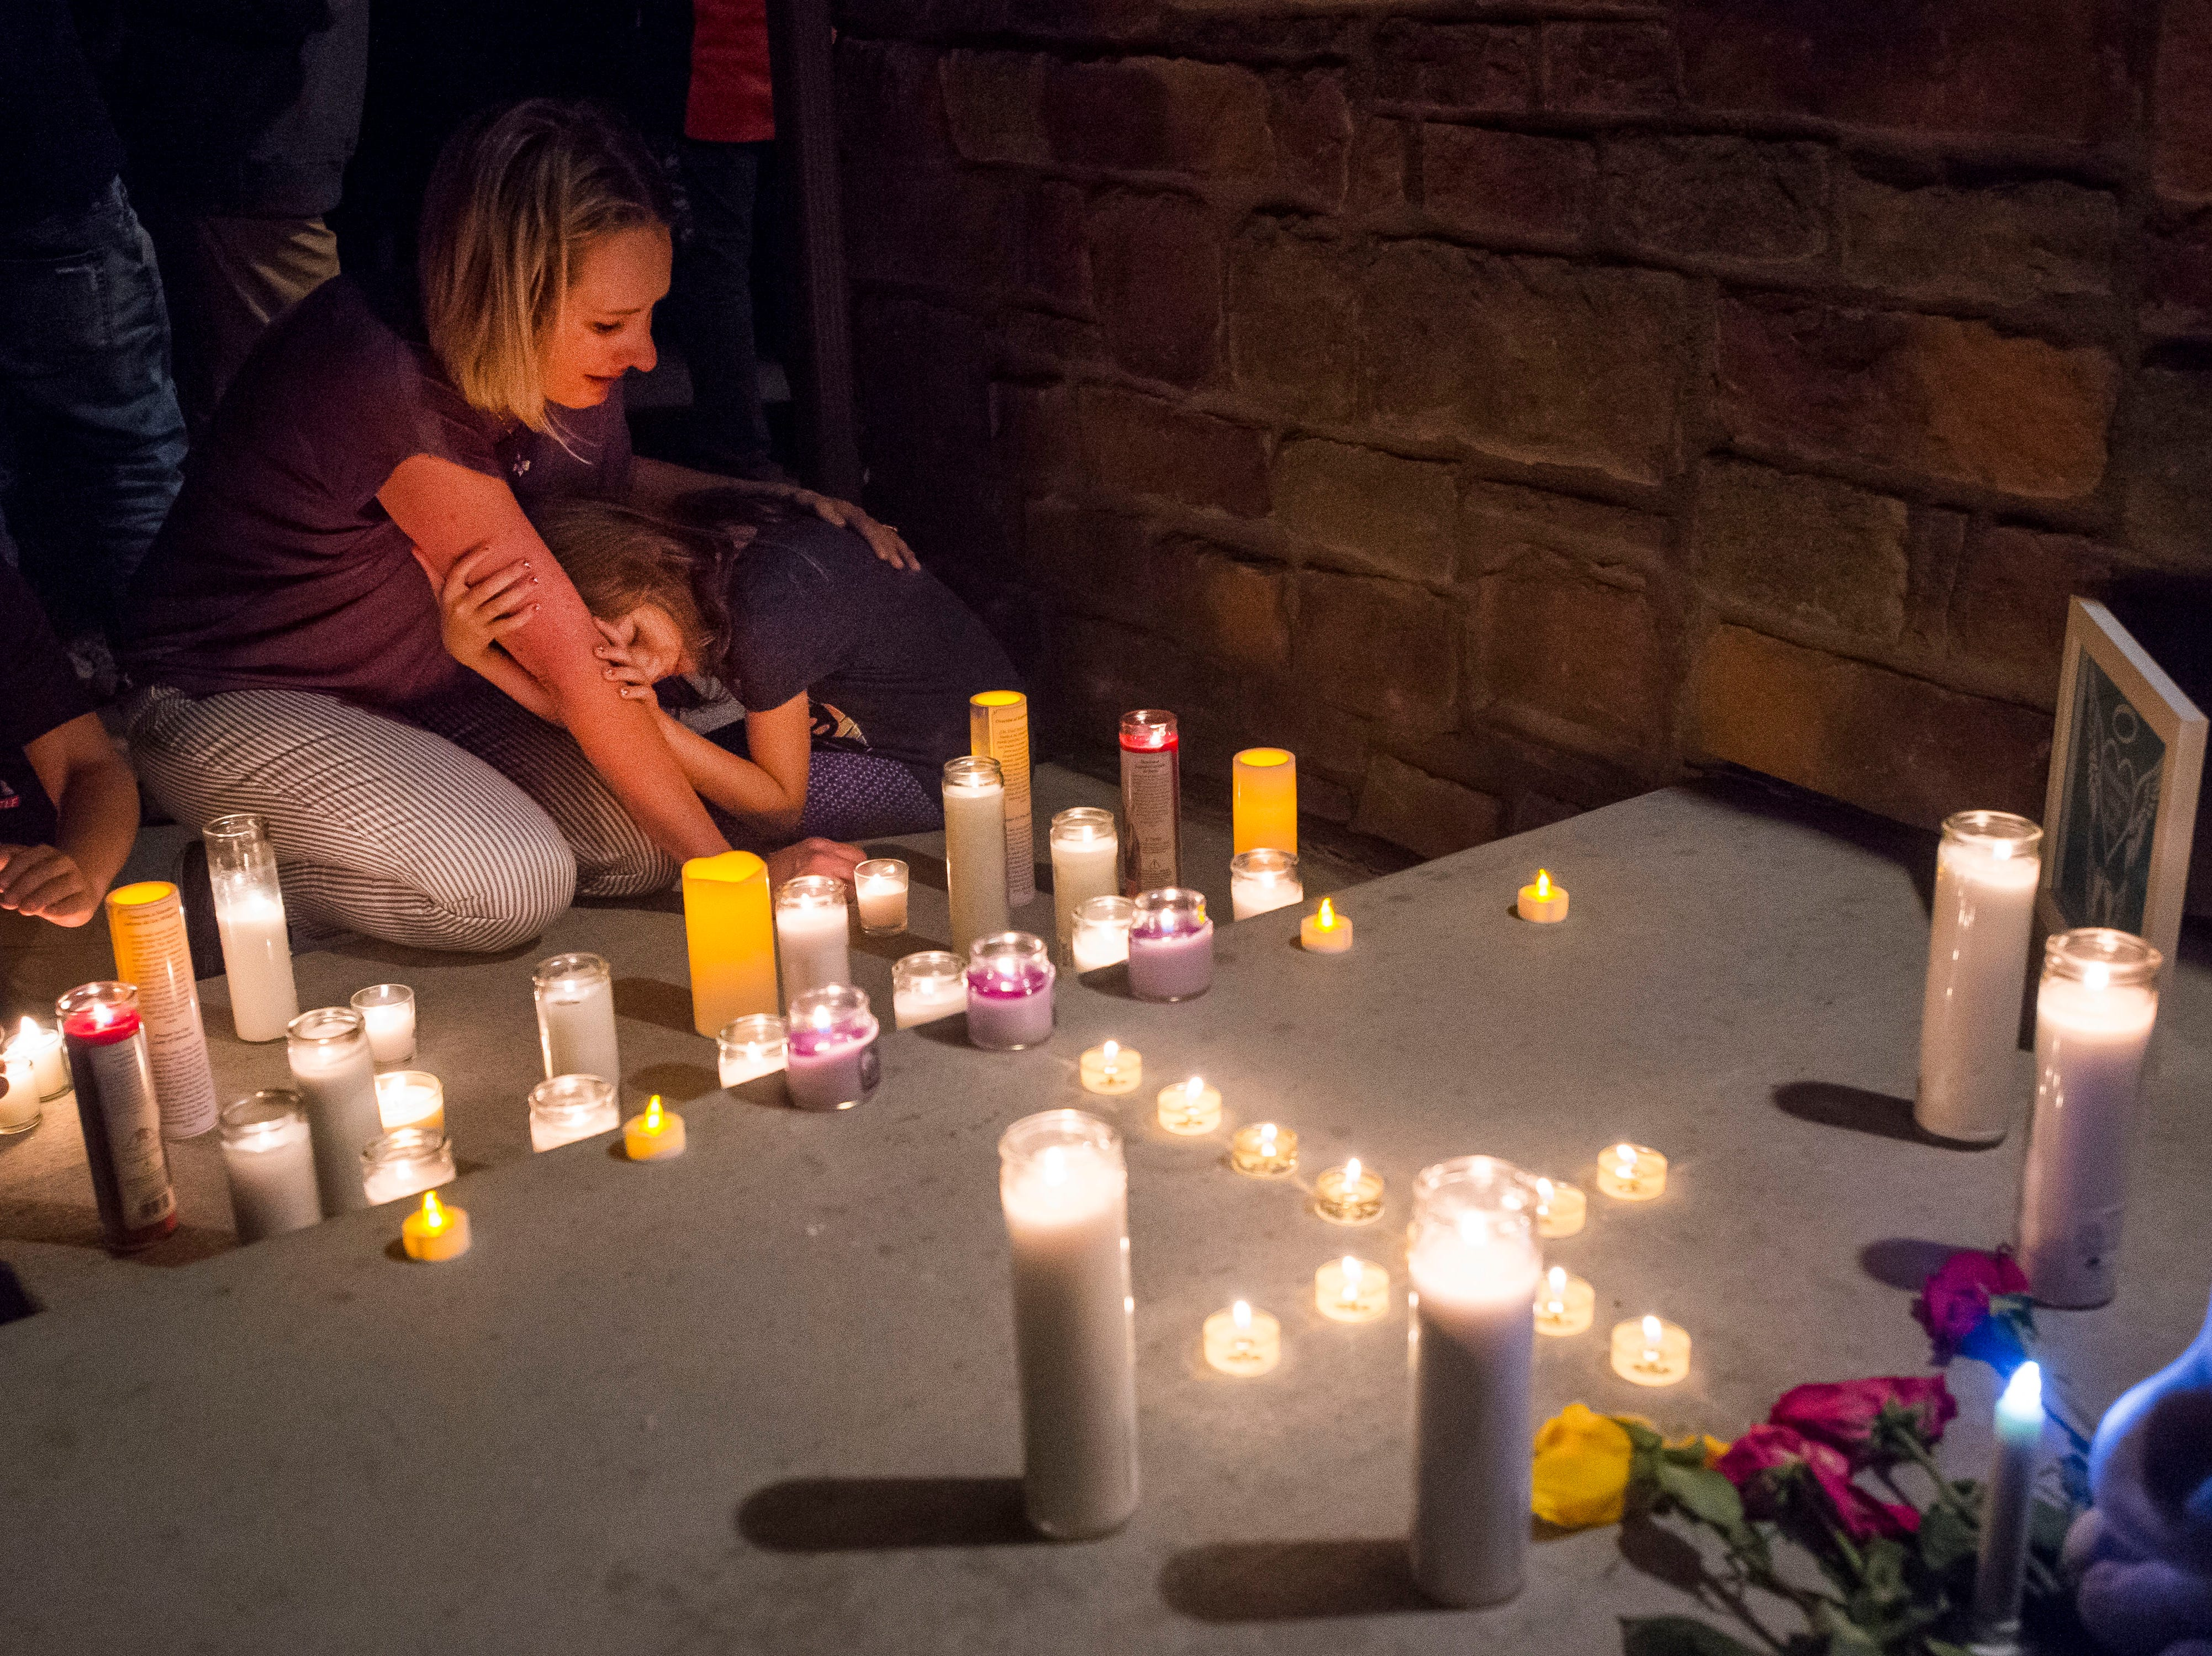 Jeanna Dietz hugs her daughter Eva, 7, while looking onto memorial on the front porch while others gather for a candle-lit vigil for the slain Shanann Watts and her two daughters, Bella, 4, and Celeste, 3, in front of the Watts' family home on Friday, Aug. 17, 2018, in Frederick, Colo.